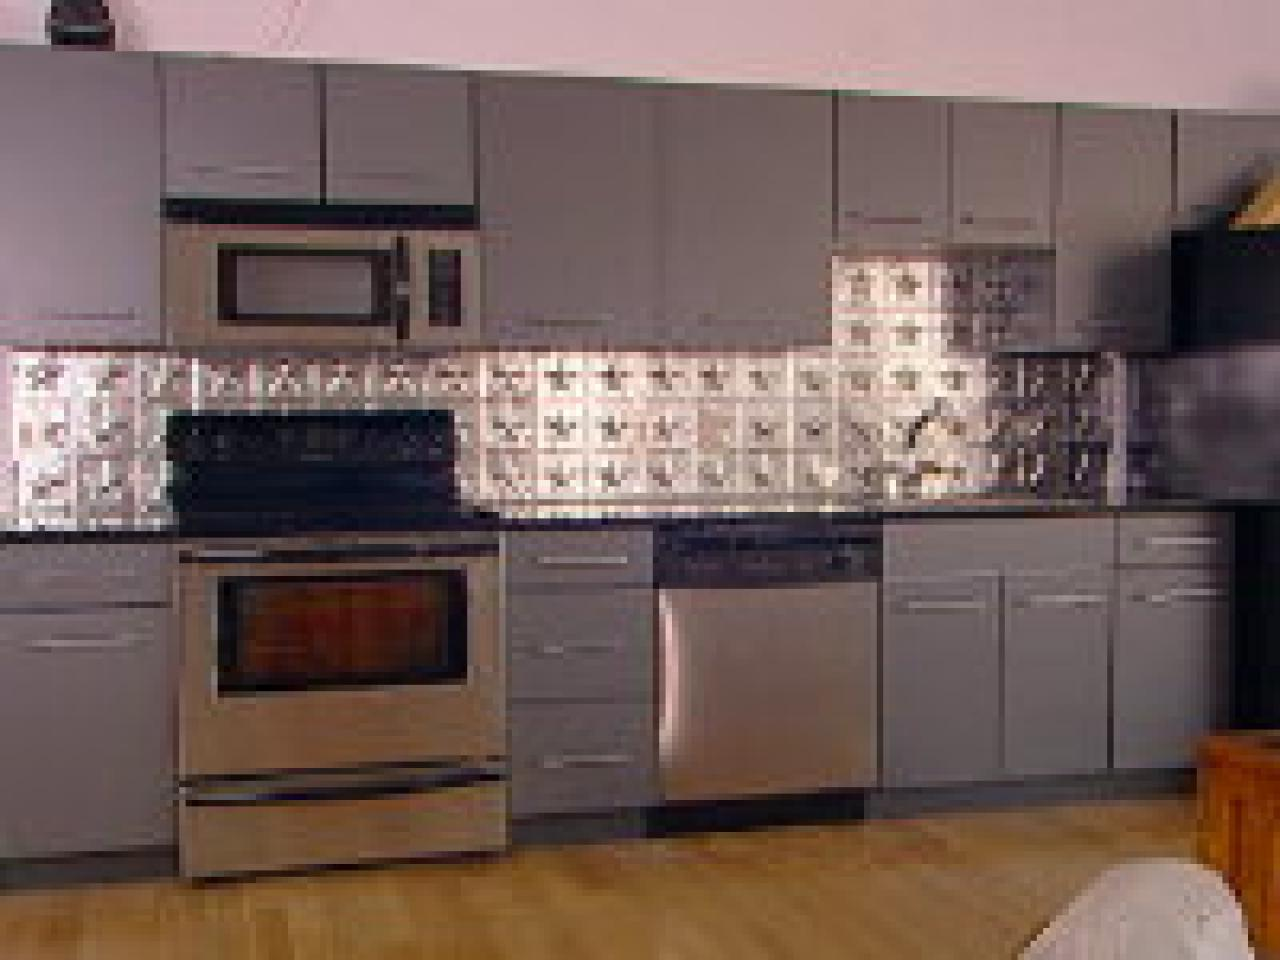 Tin kitchen backsplash ideas memes Backsplash wall tile